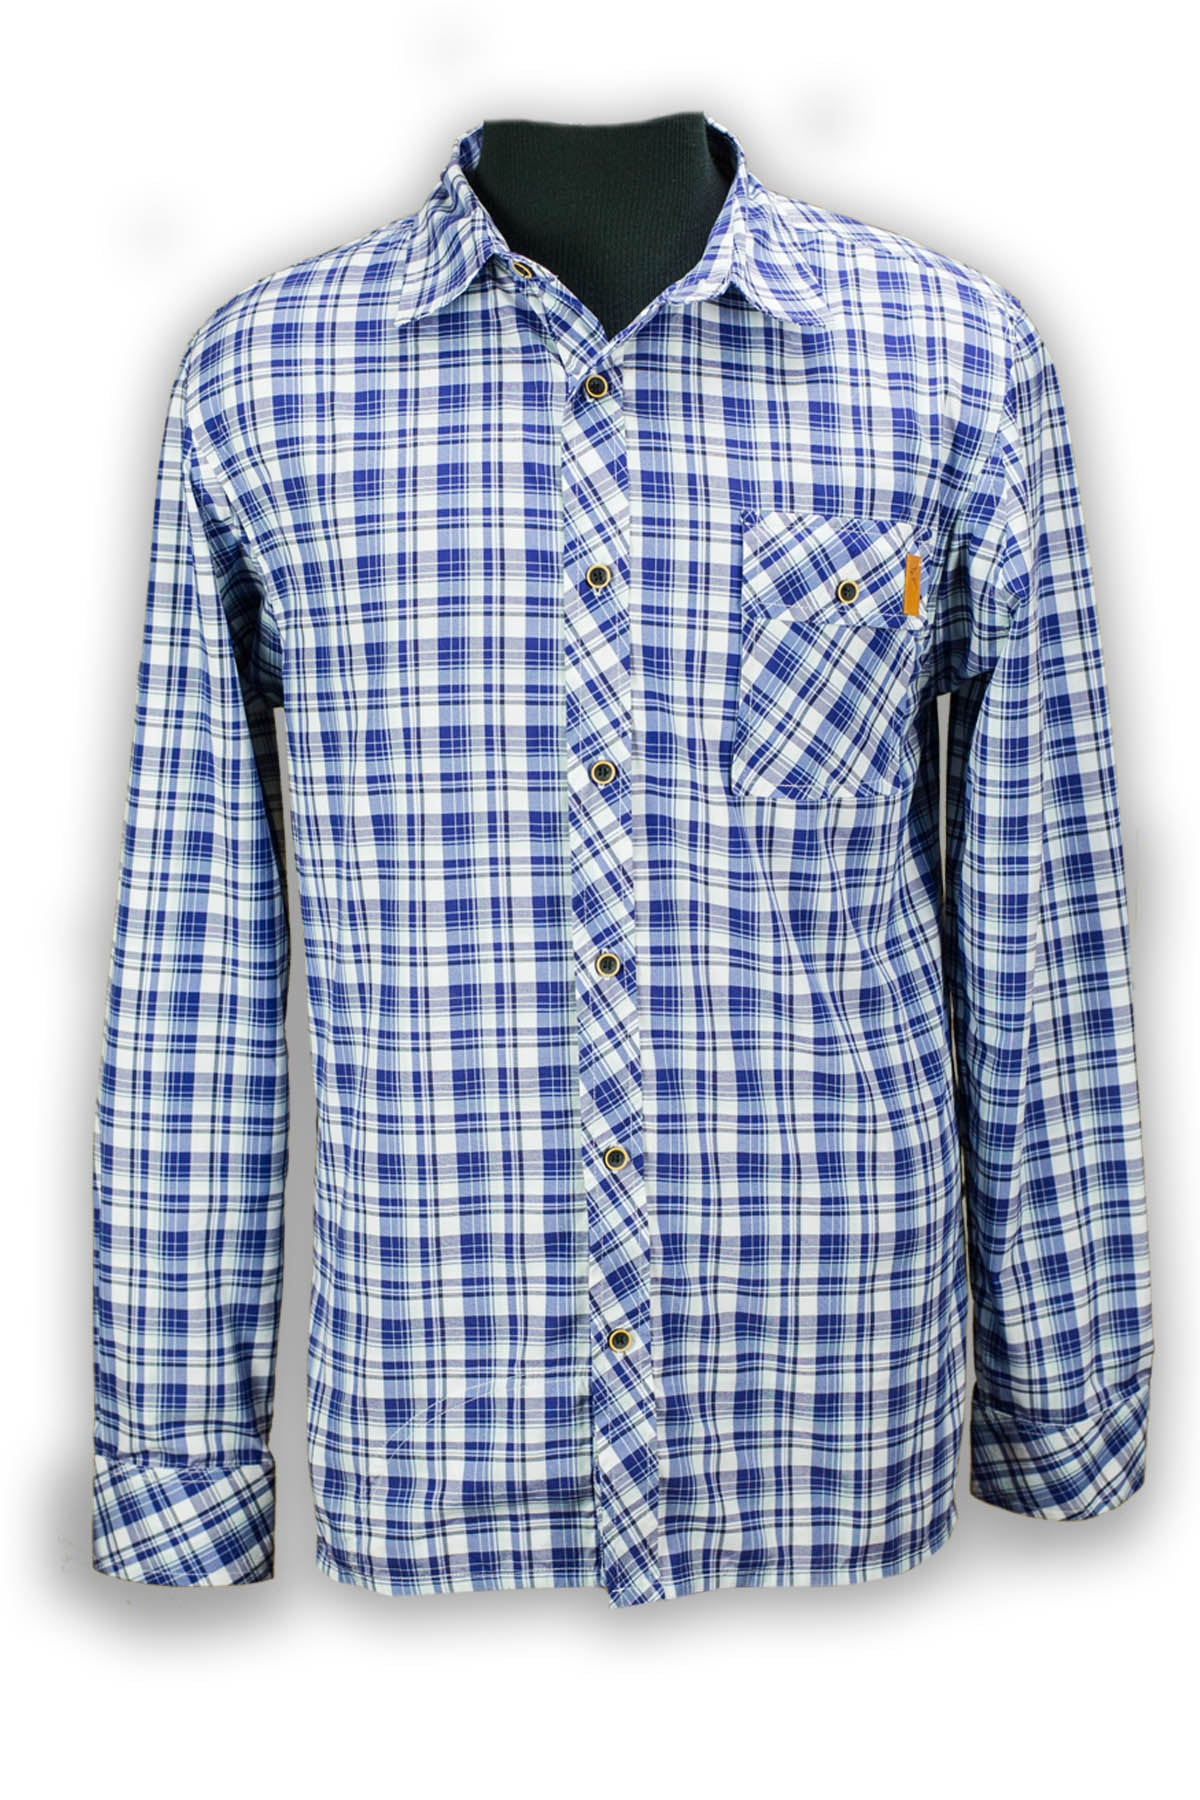 Swift Creek Button Down